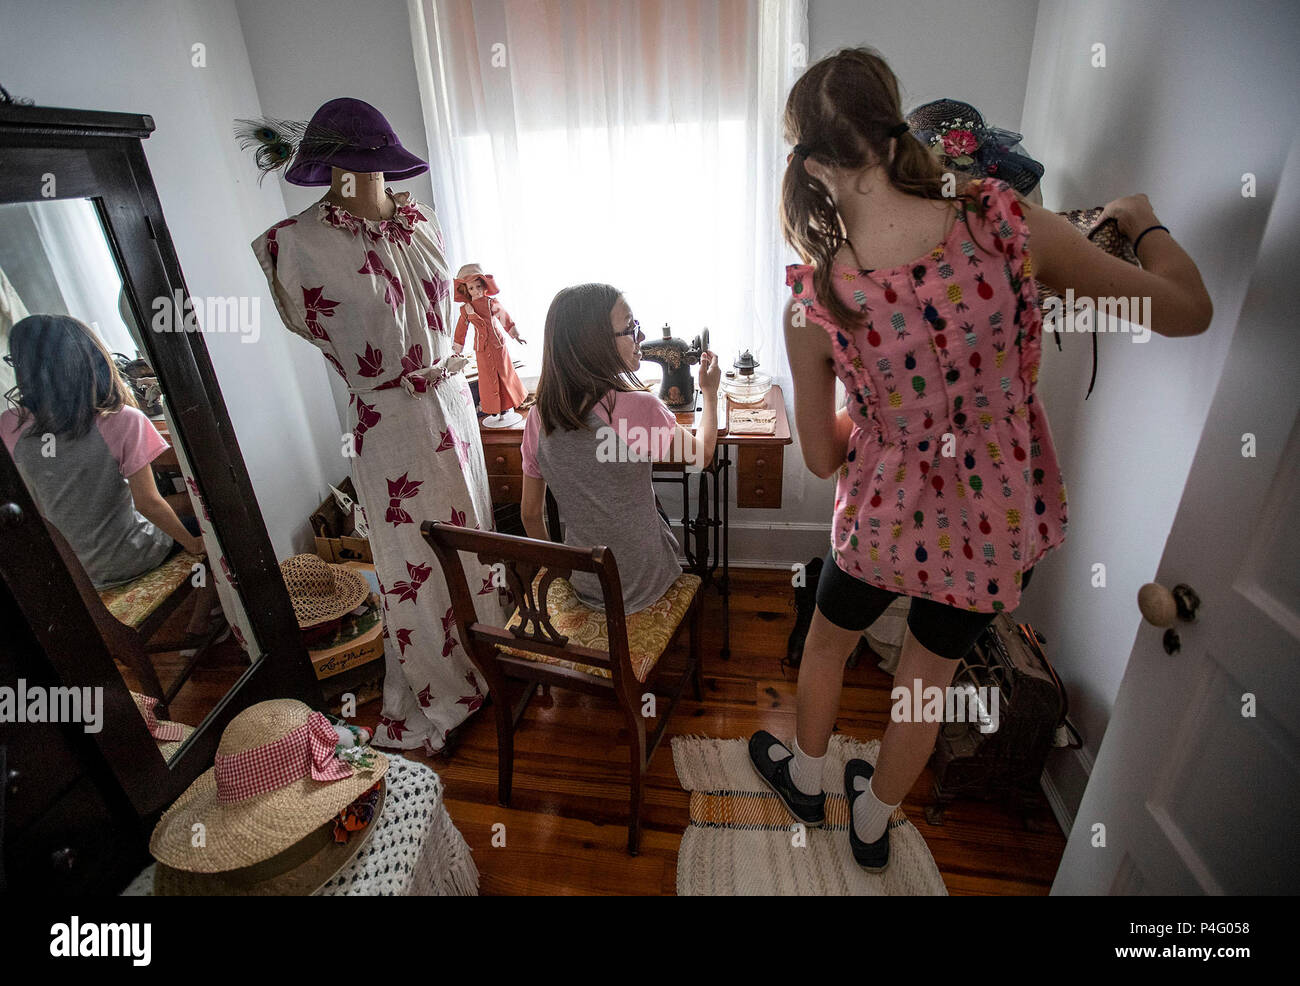 West Palm Beach, Florida, USA. 21st June, 2018. Coral Hodges, 12, Lake Worth and Isabella Ward, 11, Lake Clarke Shores explore the sewing room at the Riddle House in Yesteryear Village at the South Florida Fairgrounds in West Palm Beach, Florida on June 21, 2018. The house was built in West Palm Beach, Florida in 1905 by some of Henry Flagler's hotel construction workers. It was moved to Yesteryear Village in 1995. Credit: Allen Eyestone/The Palm Beach Post/ZUMA Wire/Alamy Live News - Stock Image